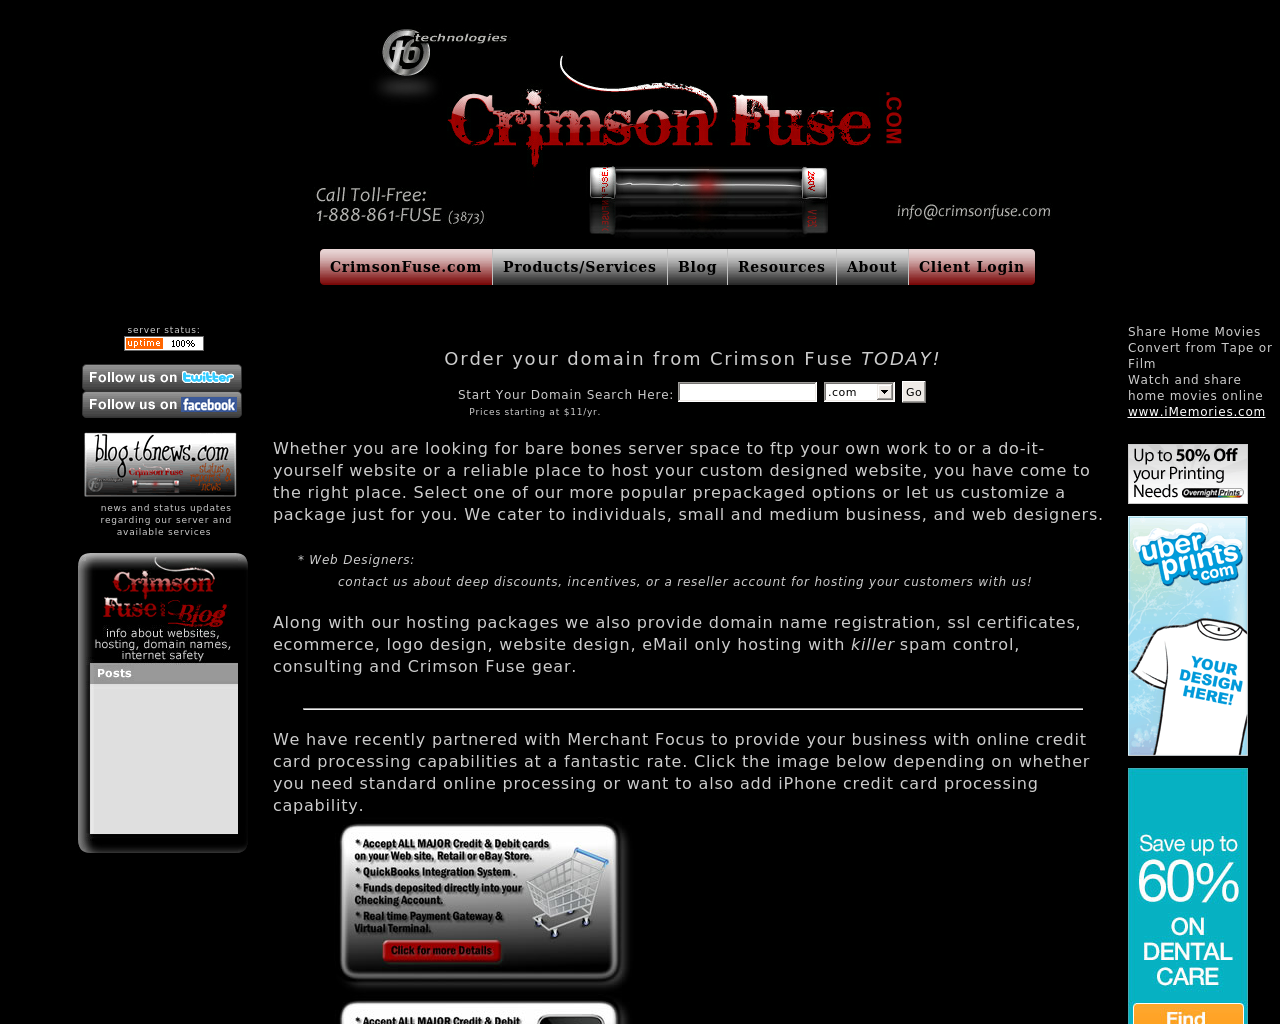 Crimson-Fuse-/-T6-Technologies-Advertising-Reviews-Pricing